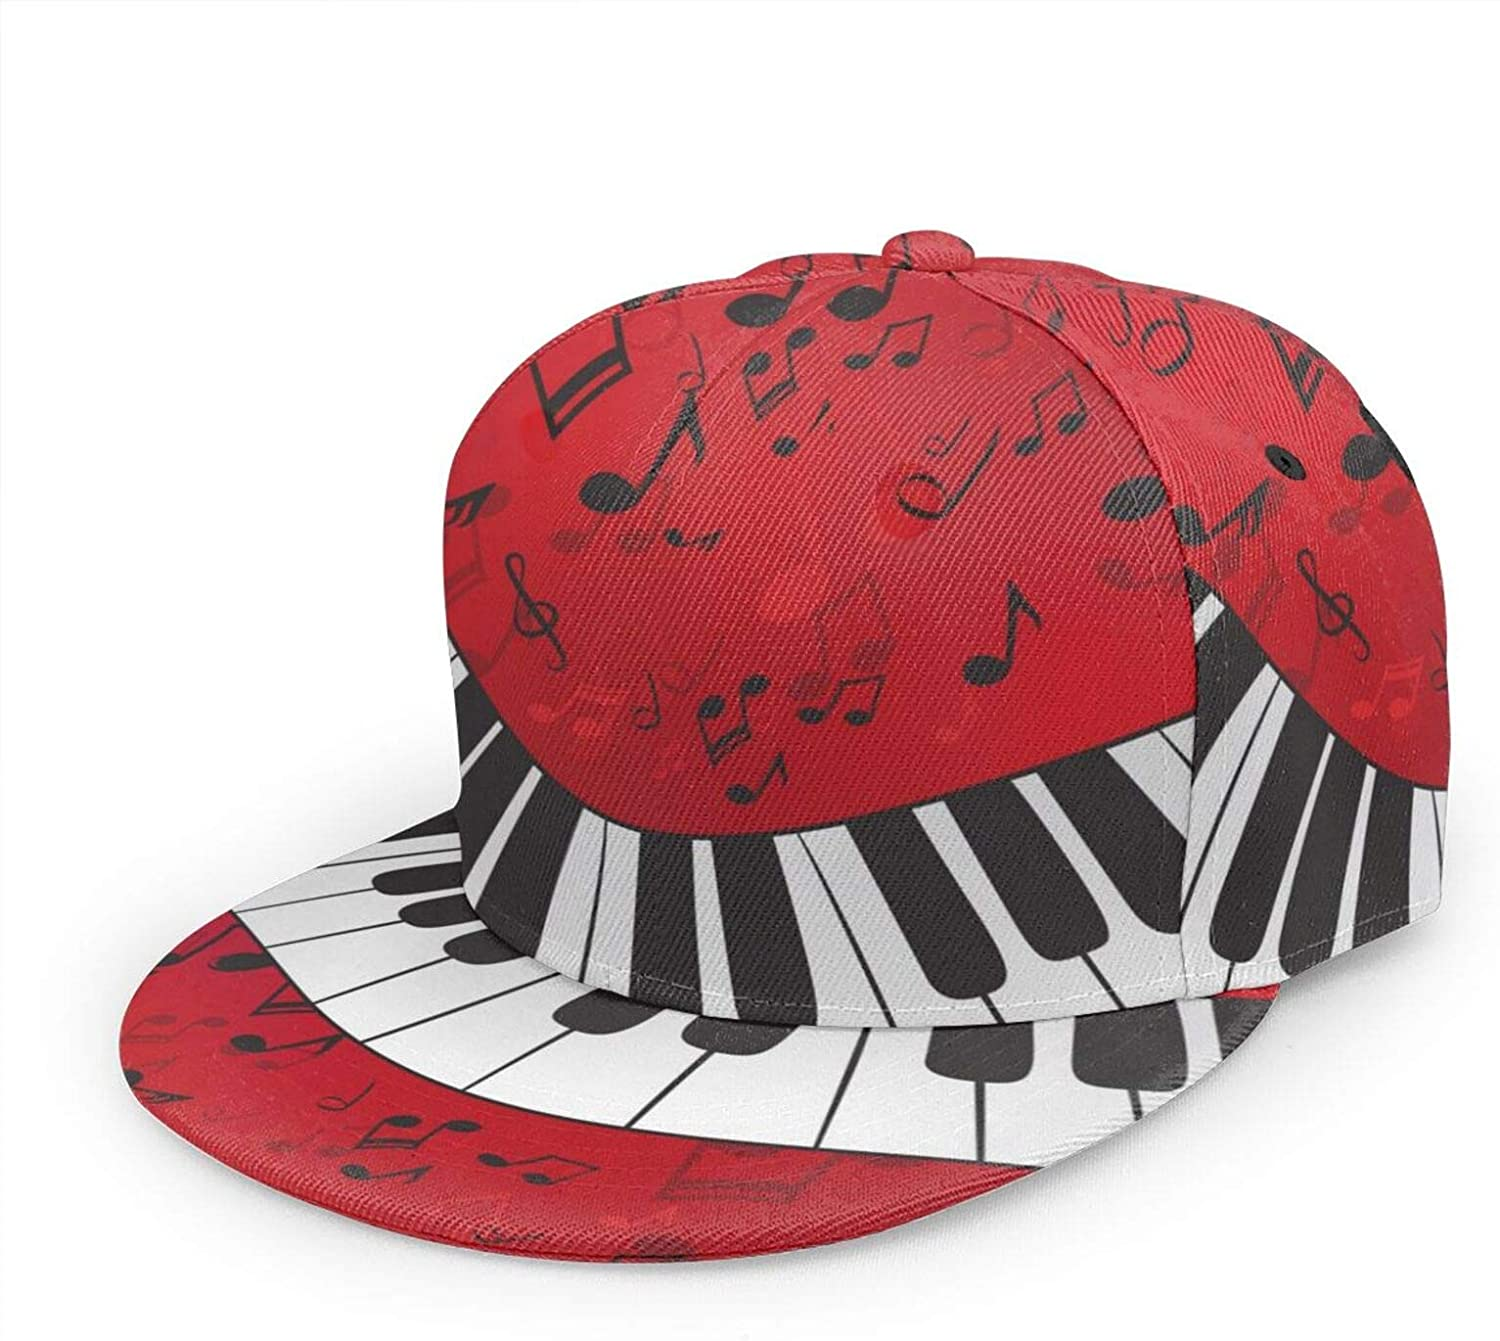 MFILUDTY Hip Hop Baseball Cap Free Shipping New Music Hat Note Adjustable Piano Un Special Campaign